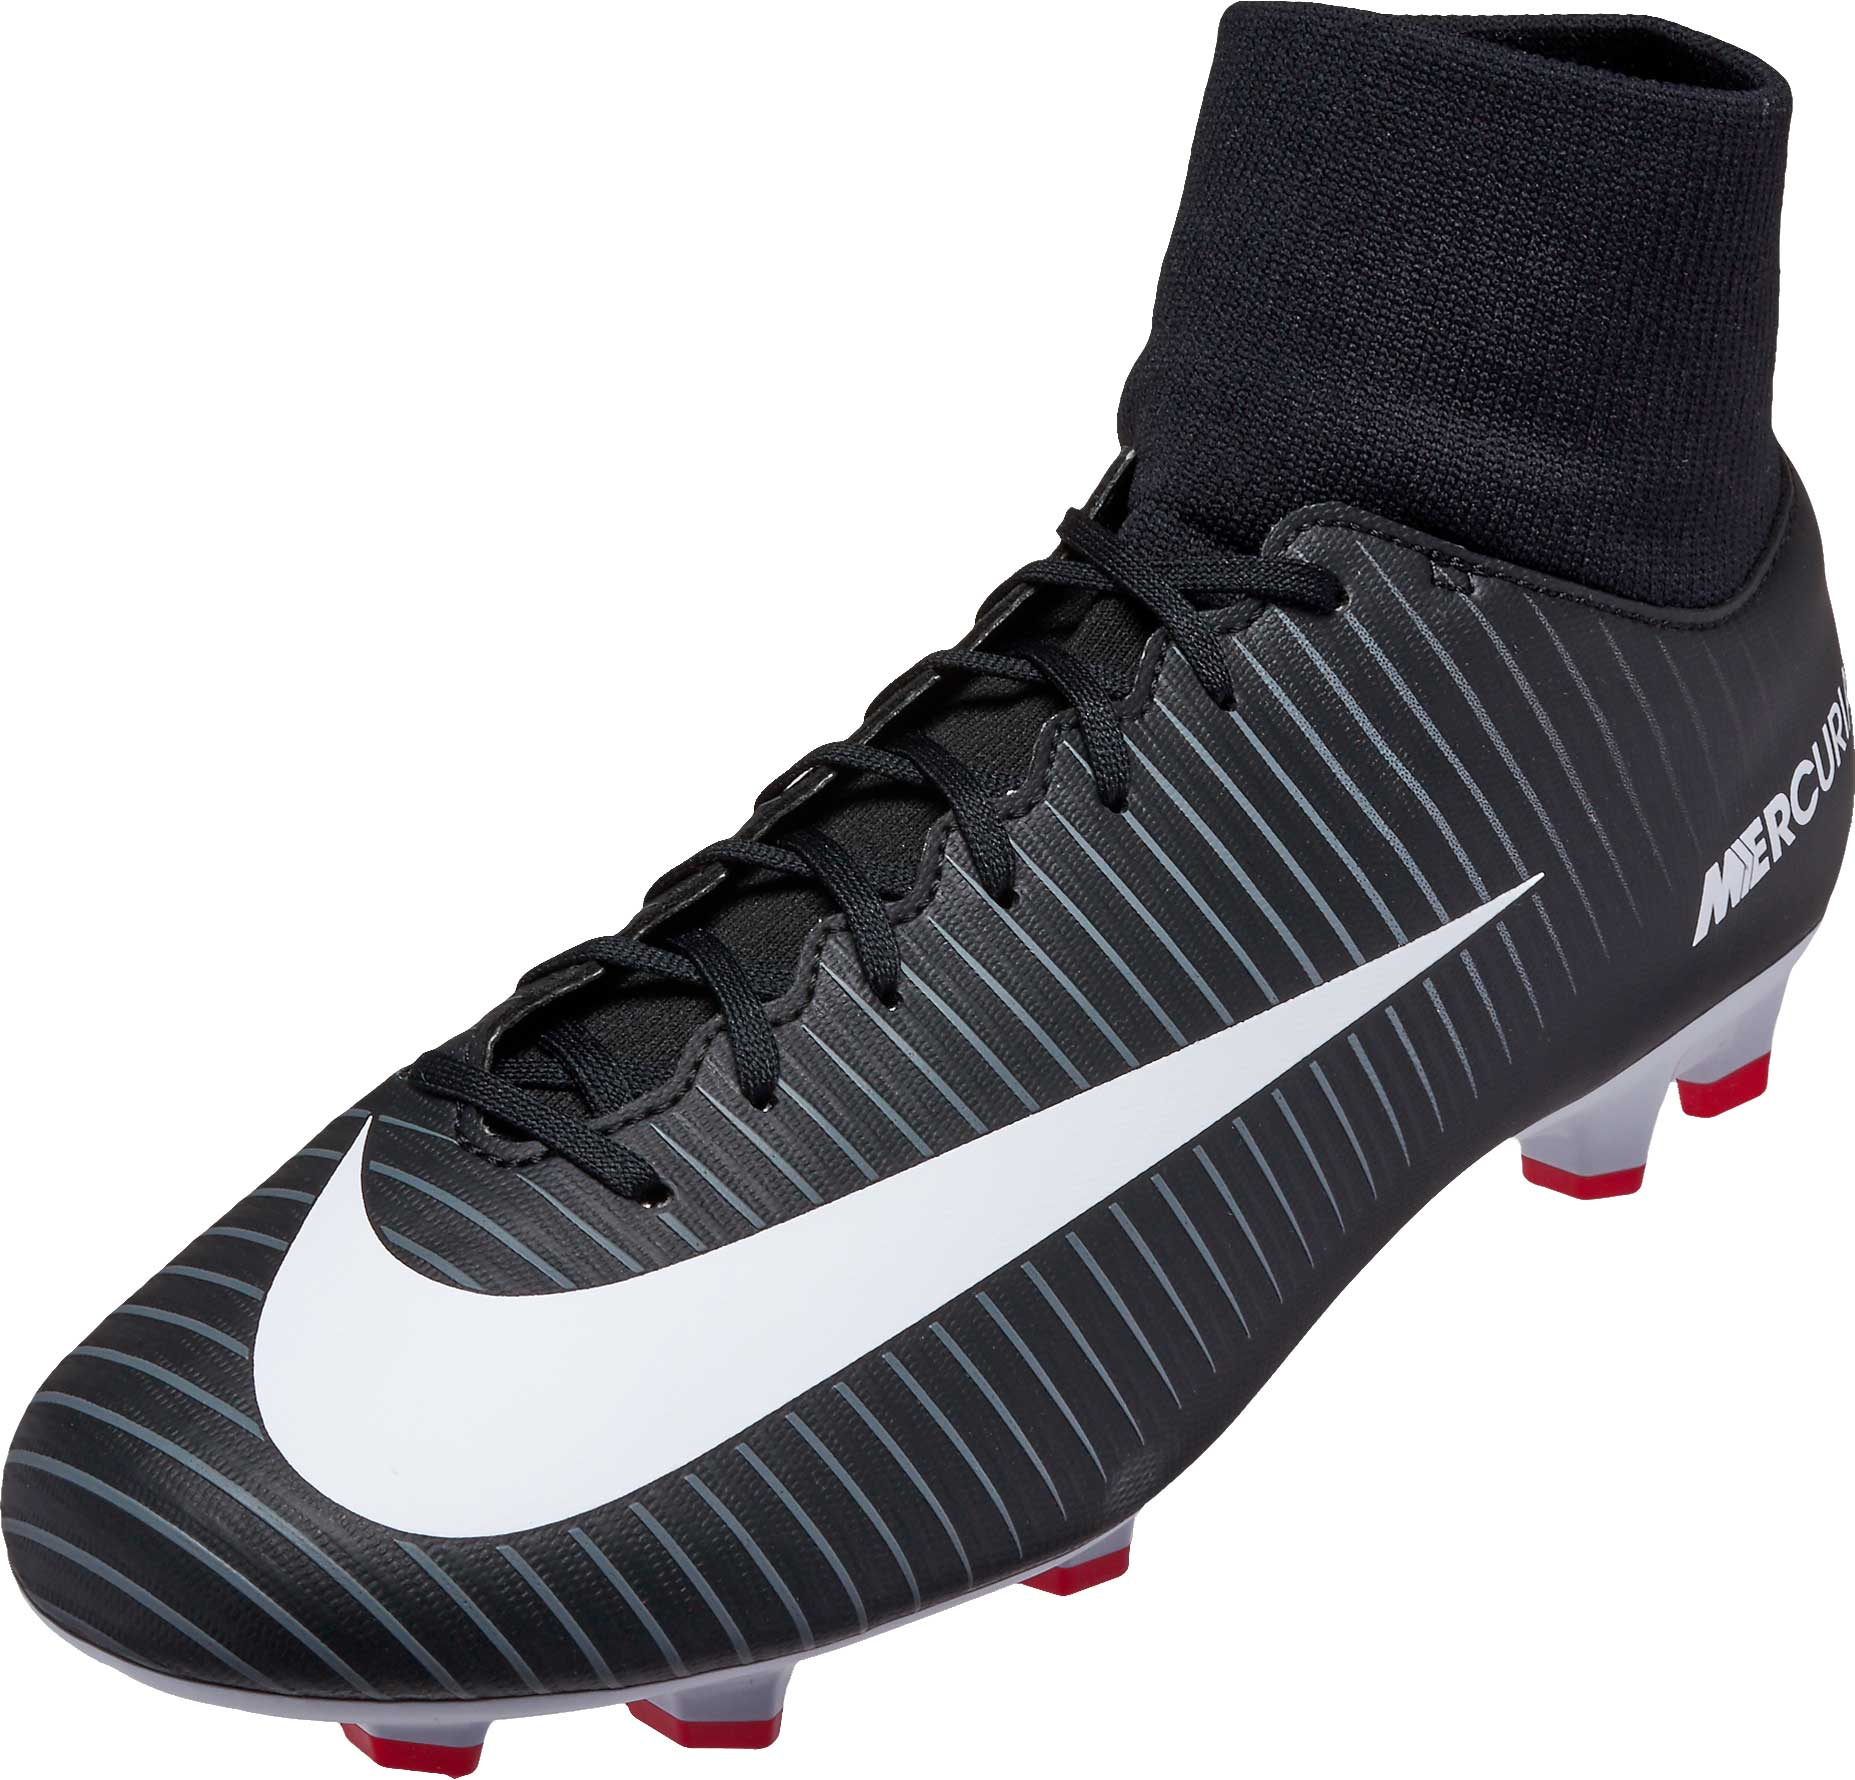 32475b5edb97 Nike Mercurial Victory VI DF FG Soccer Cleats - Black & White ...